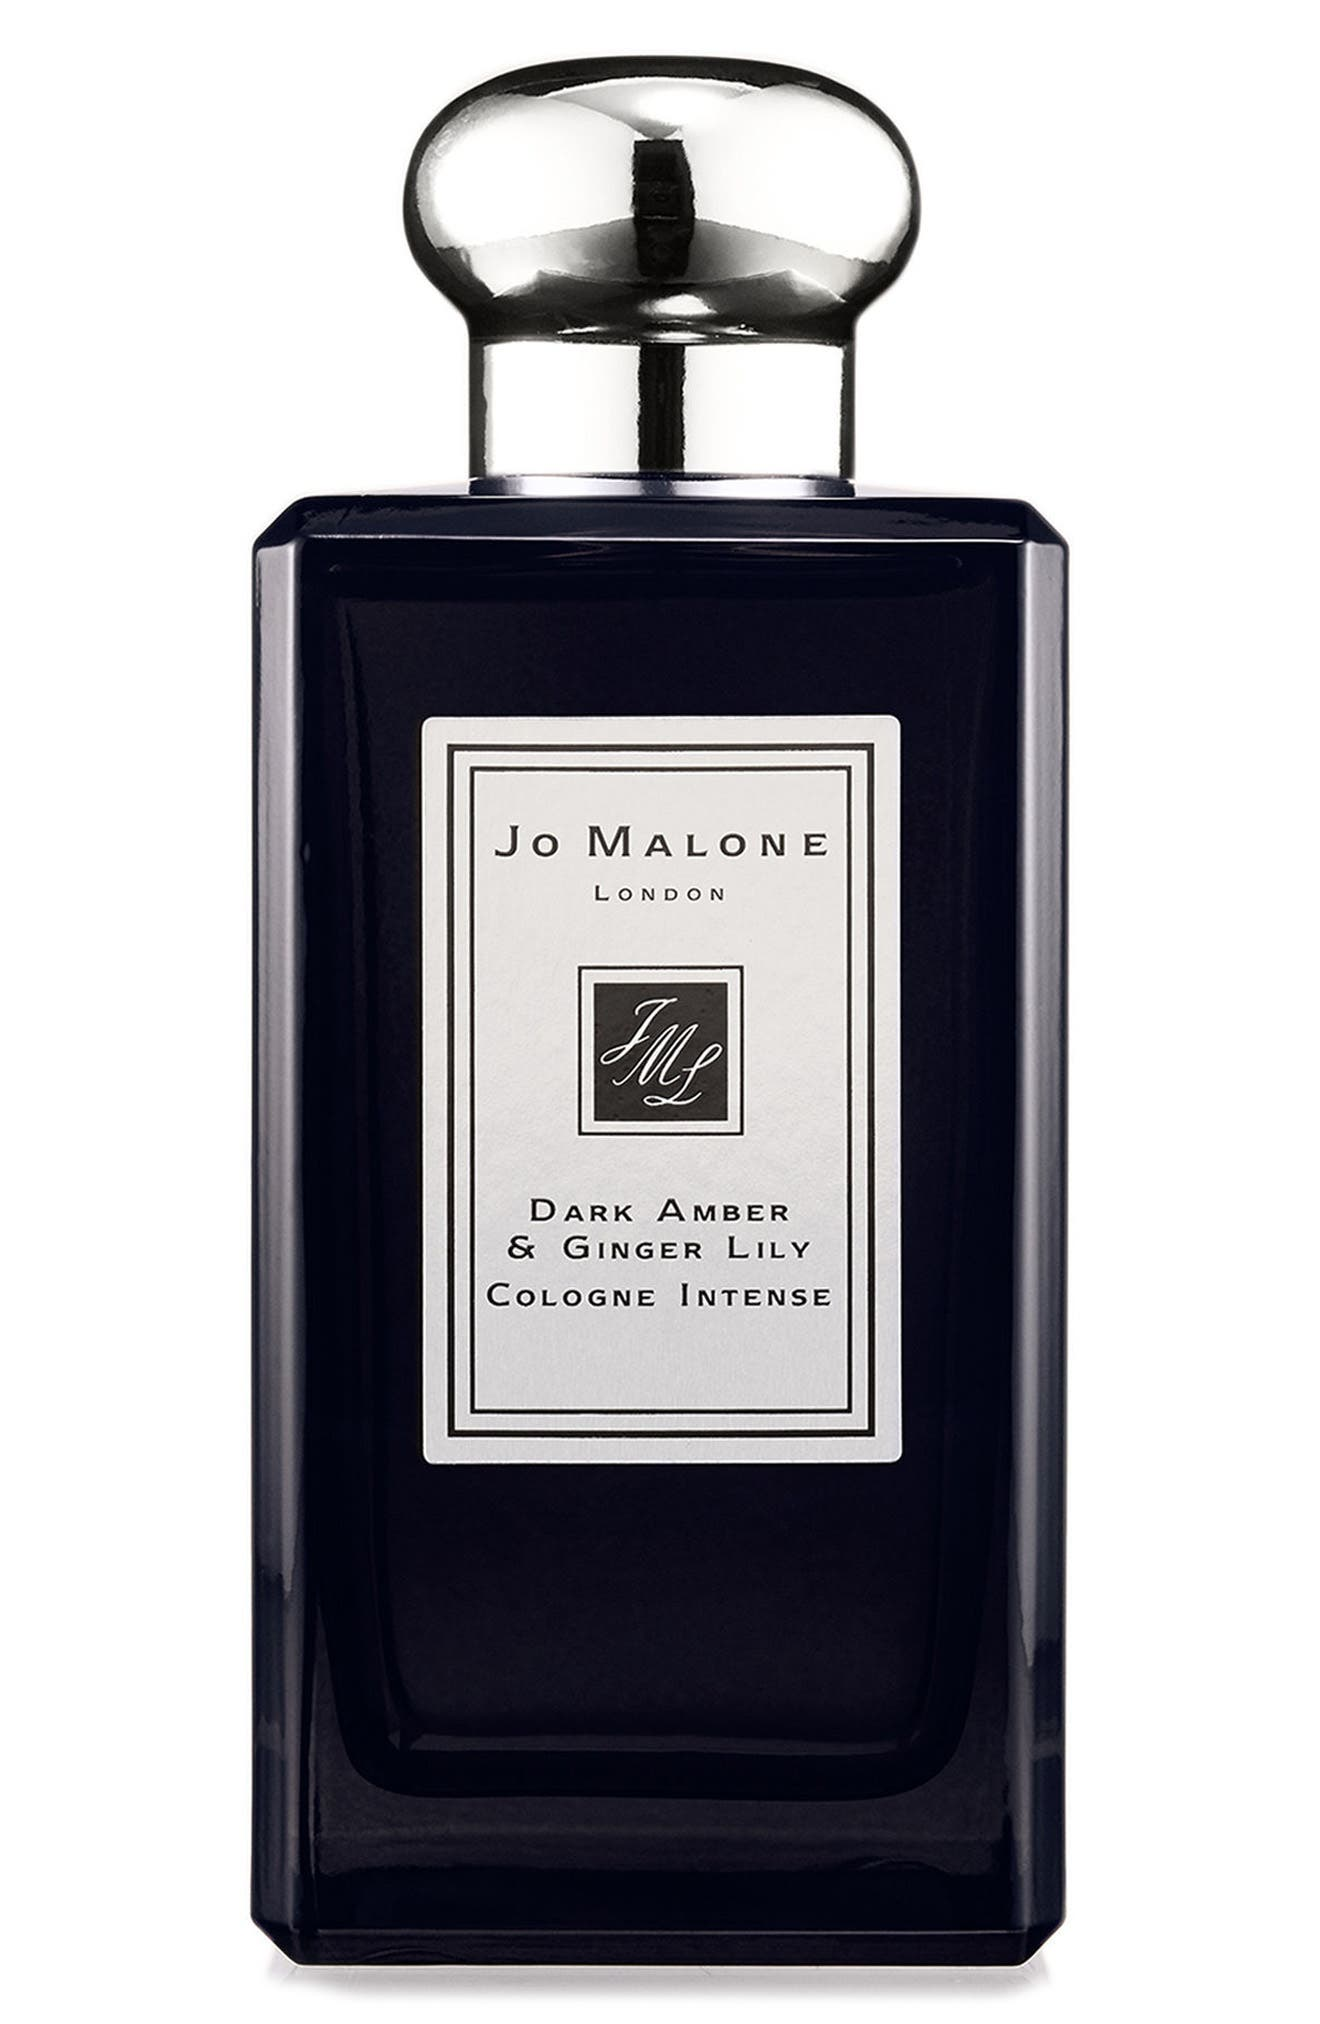 Dark Amber & Ginger Lily Cologne Intense by Jo Malone London™